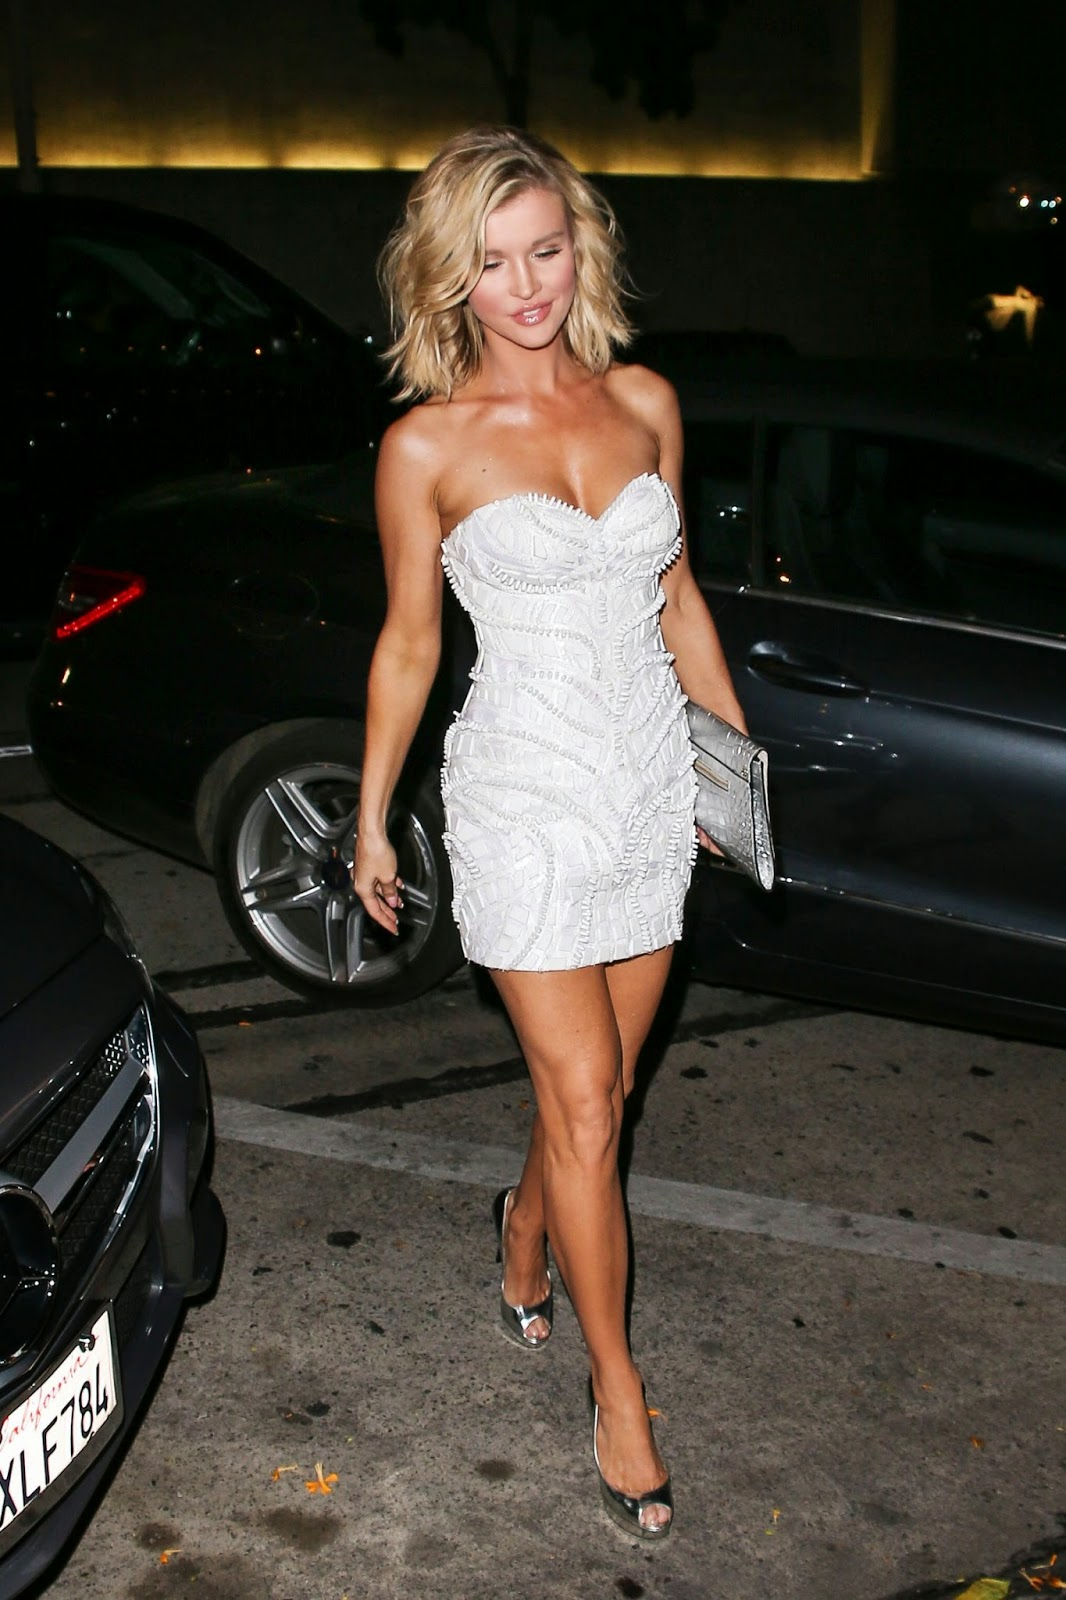 Actress, Model @ Joanna Krupa at Craig's Restaurant in West Hollywood